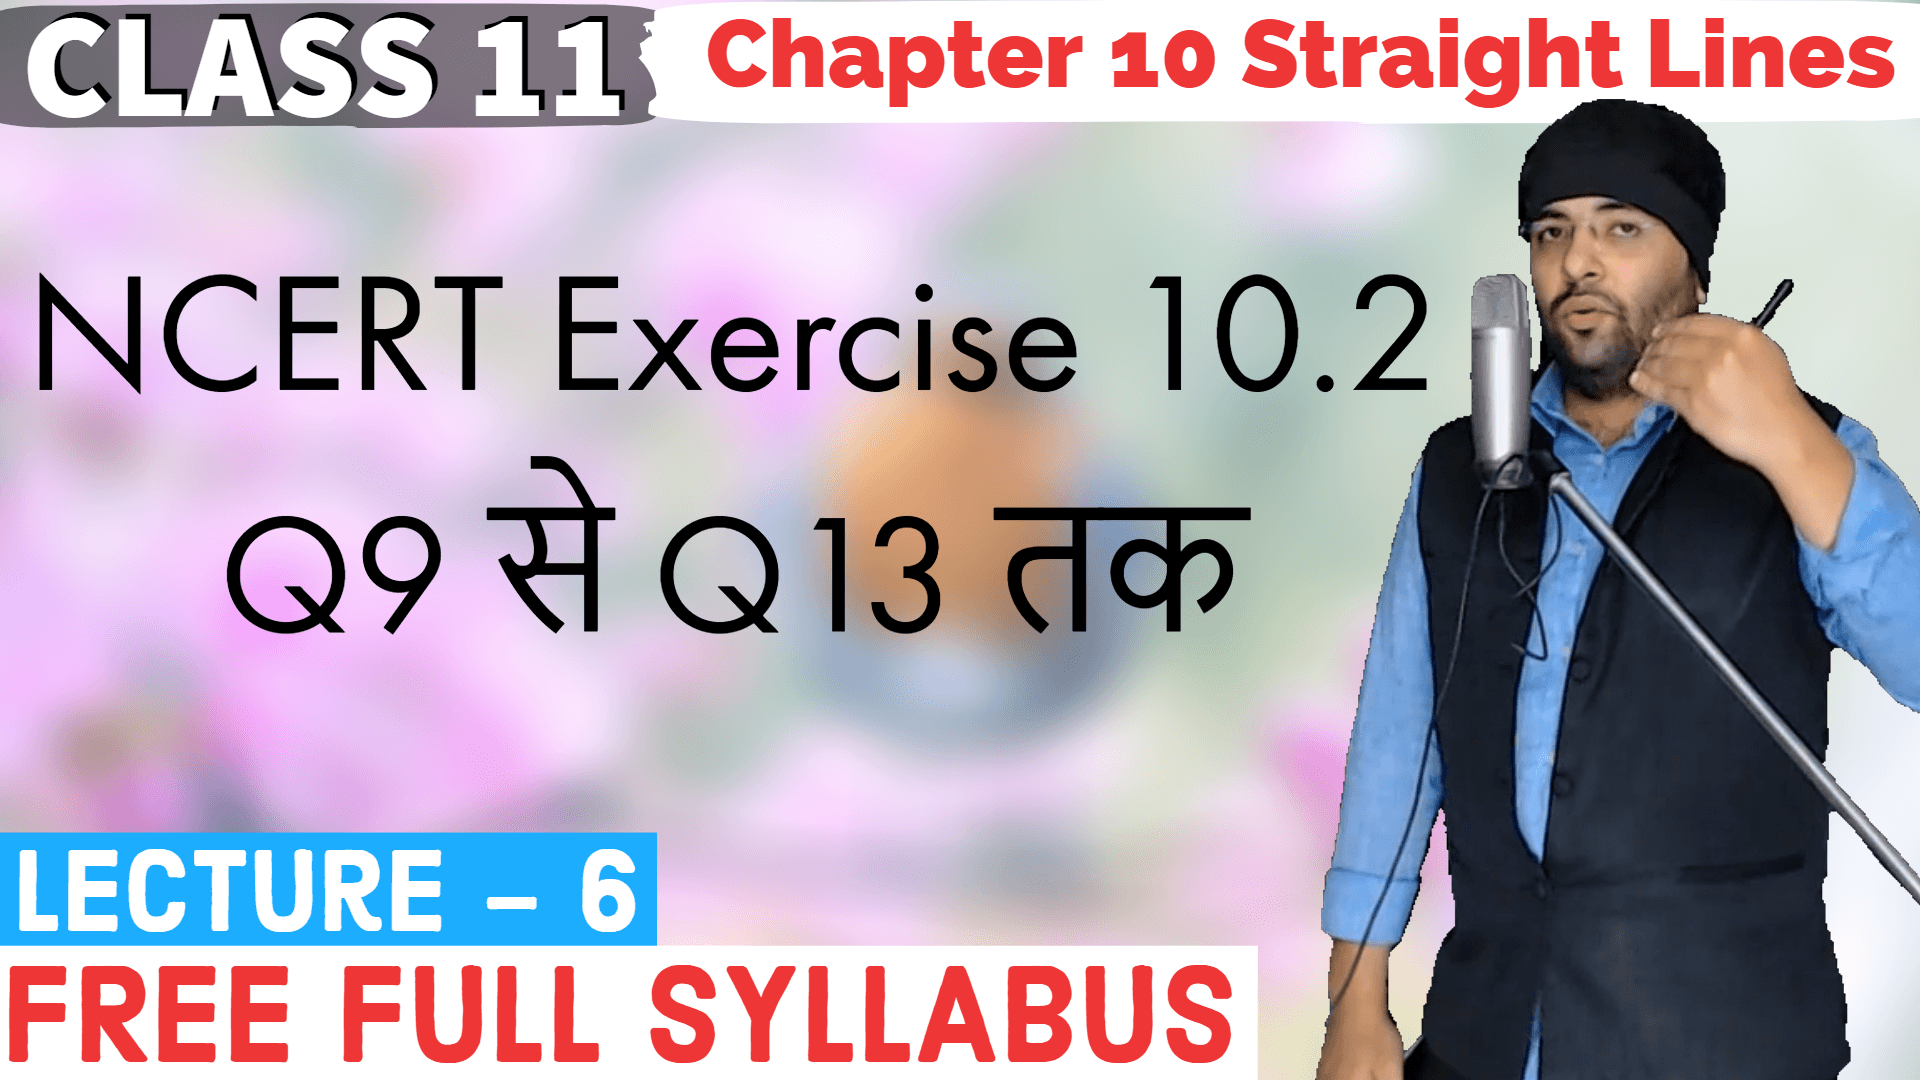 Straight Lines Lecture 6